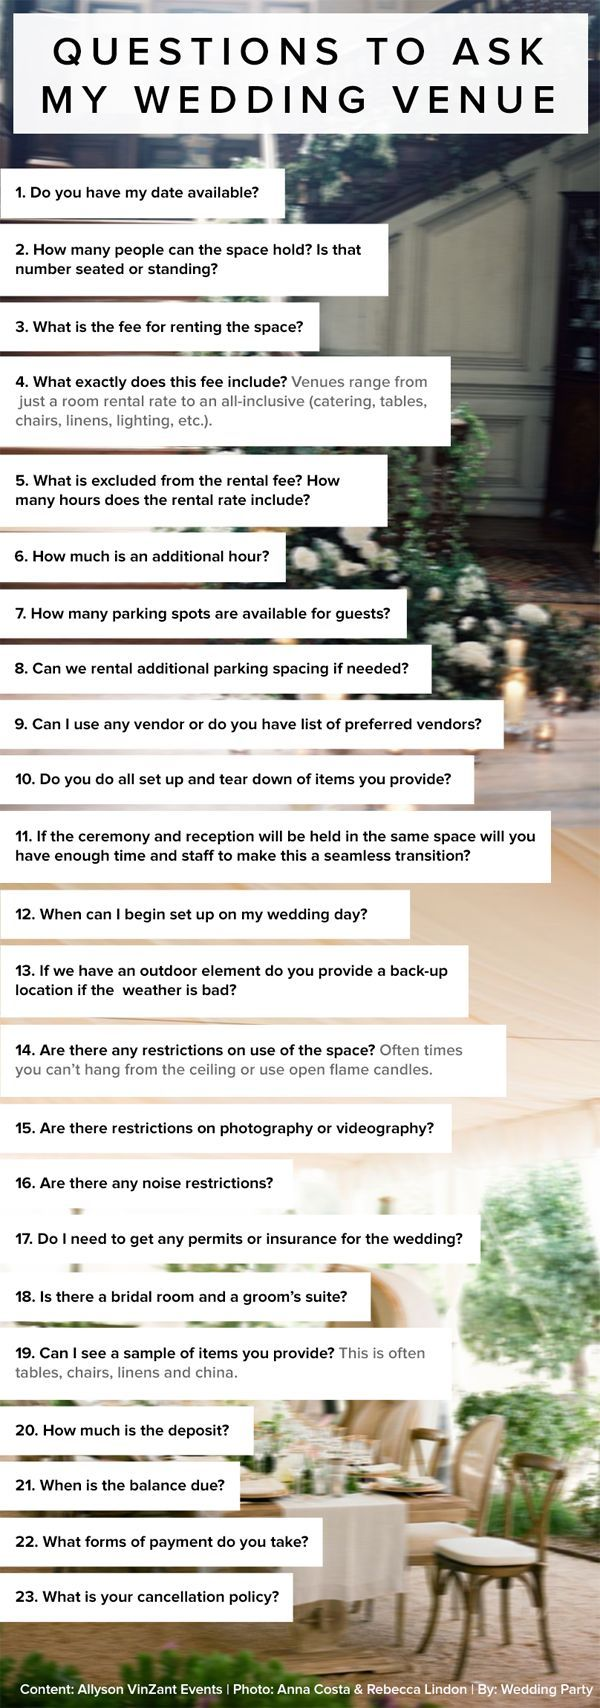 23 Questions To Ask My Wedding Venue By Allyson Vinzant Events